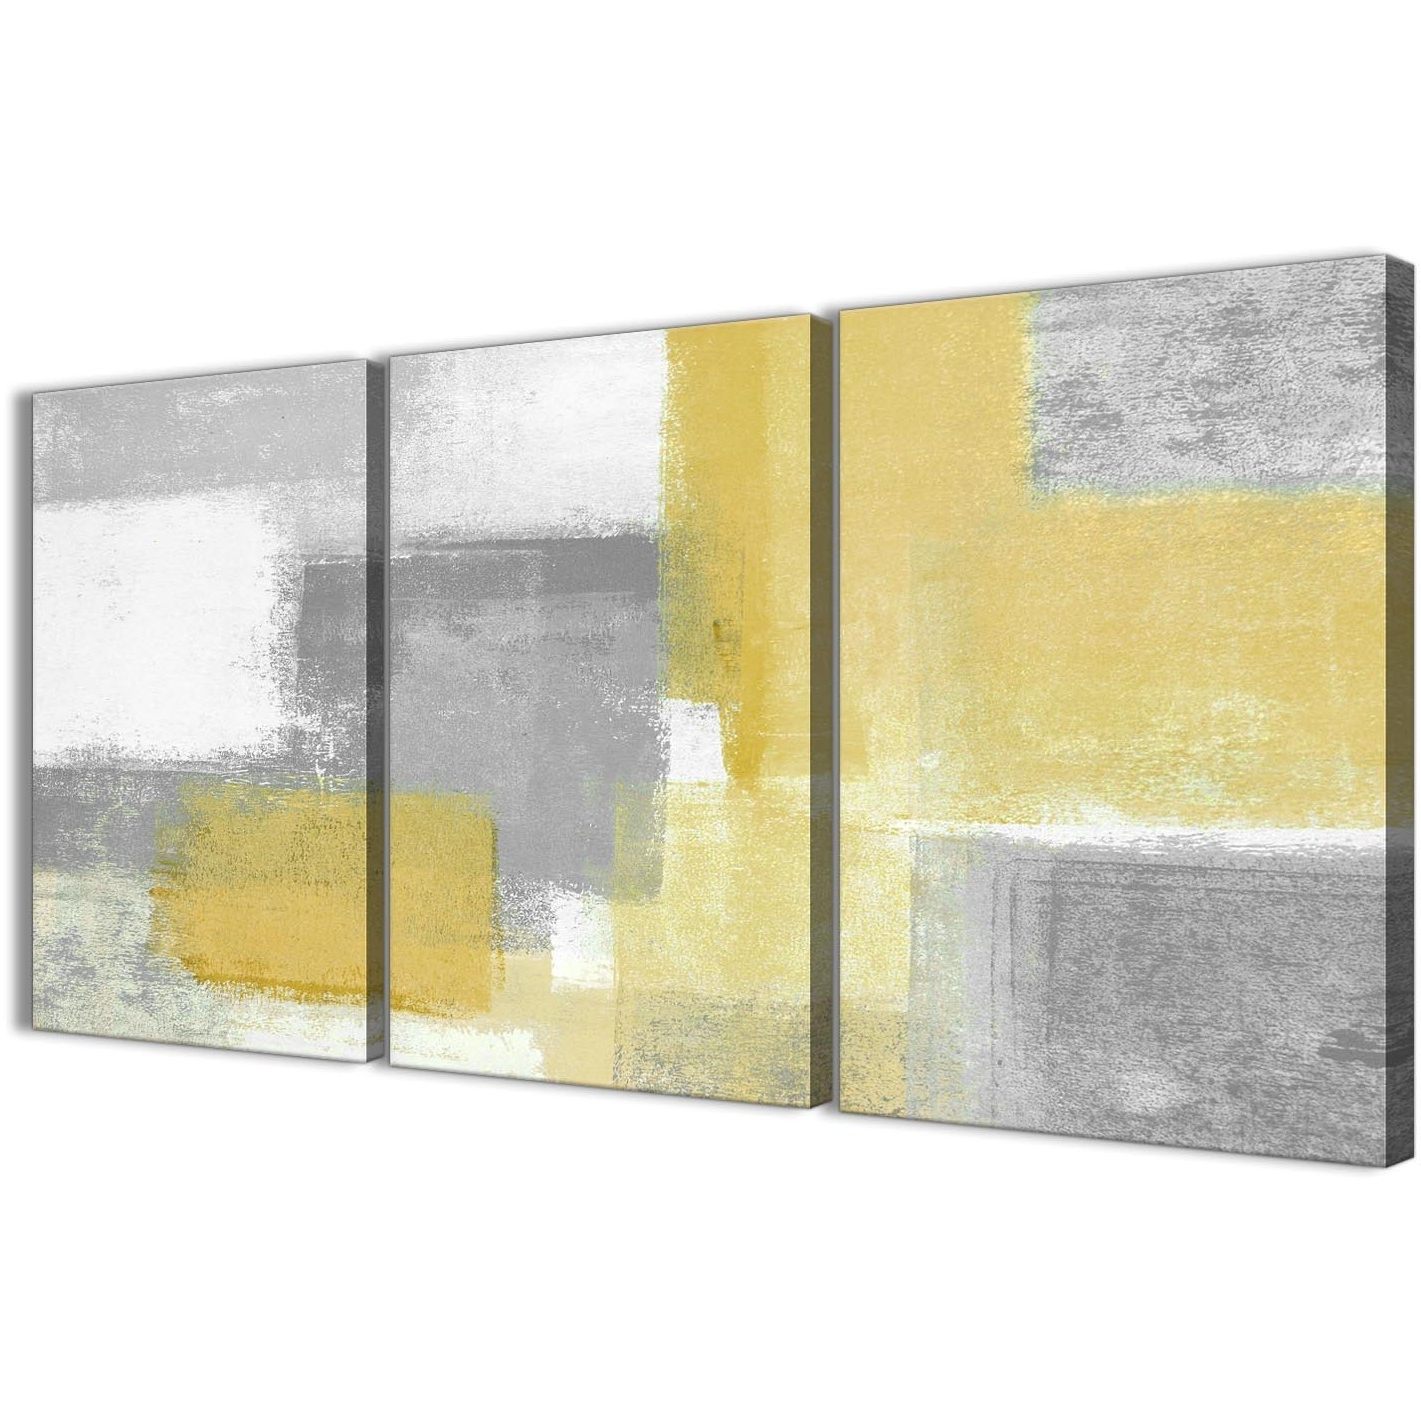 Newest Yellow Canvas Art Brilliant 3 Panel Mustard Grey Kitchen Wall Decor Inside Yellow And Gray Wall Art (View 6 of 15)